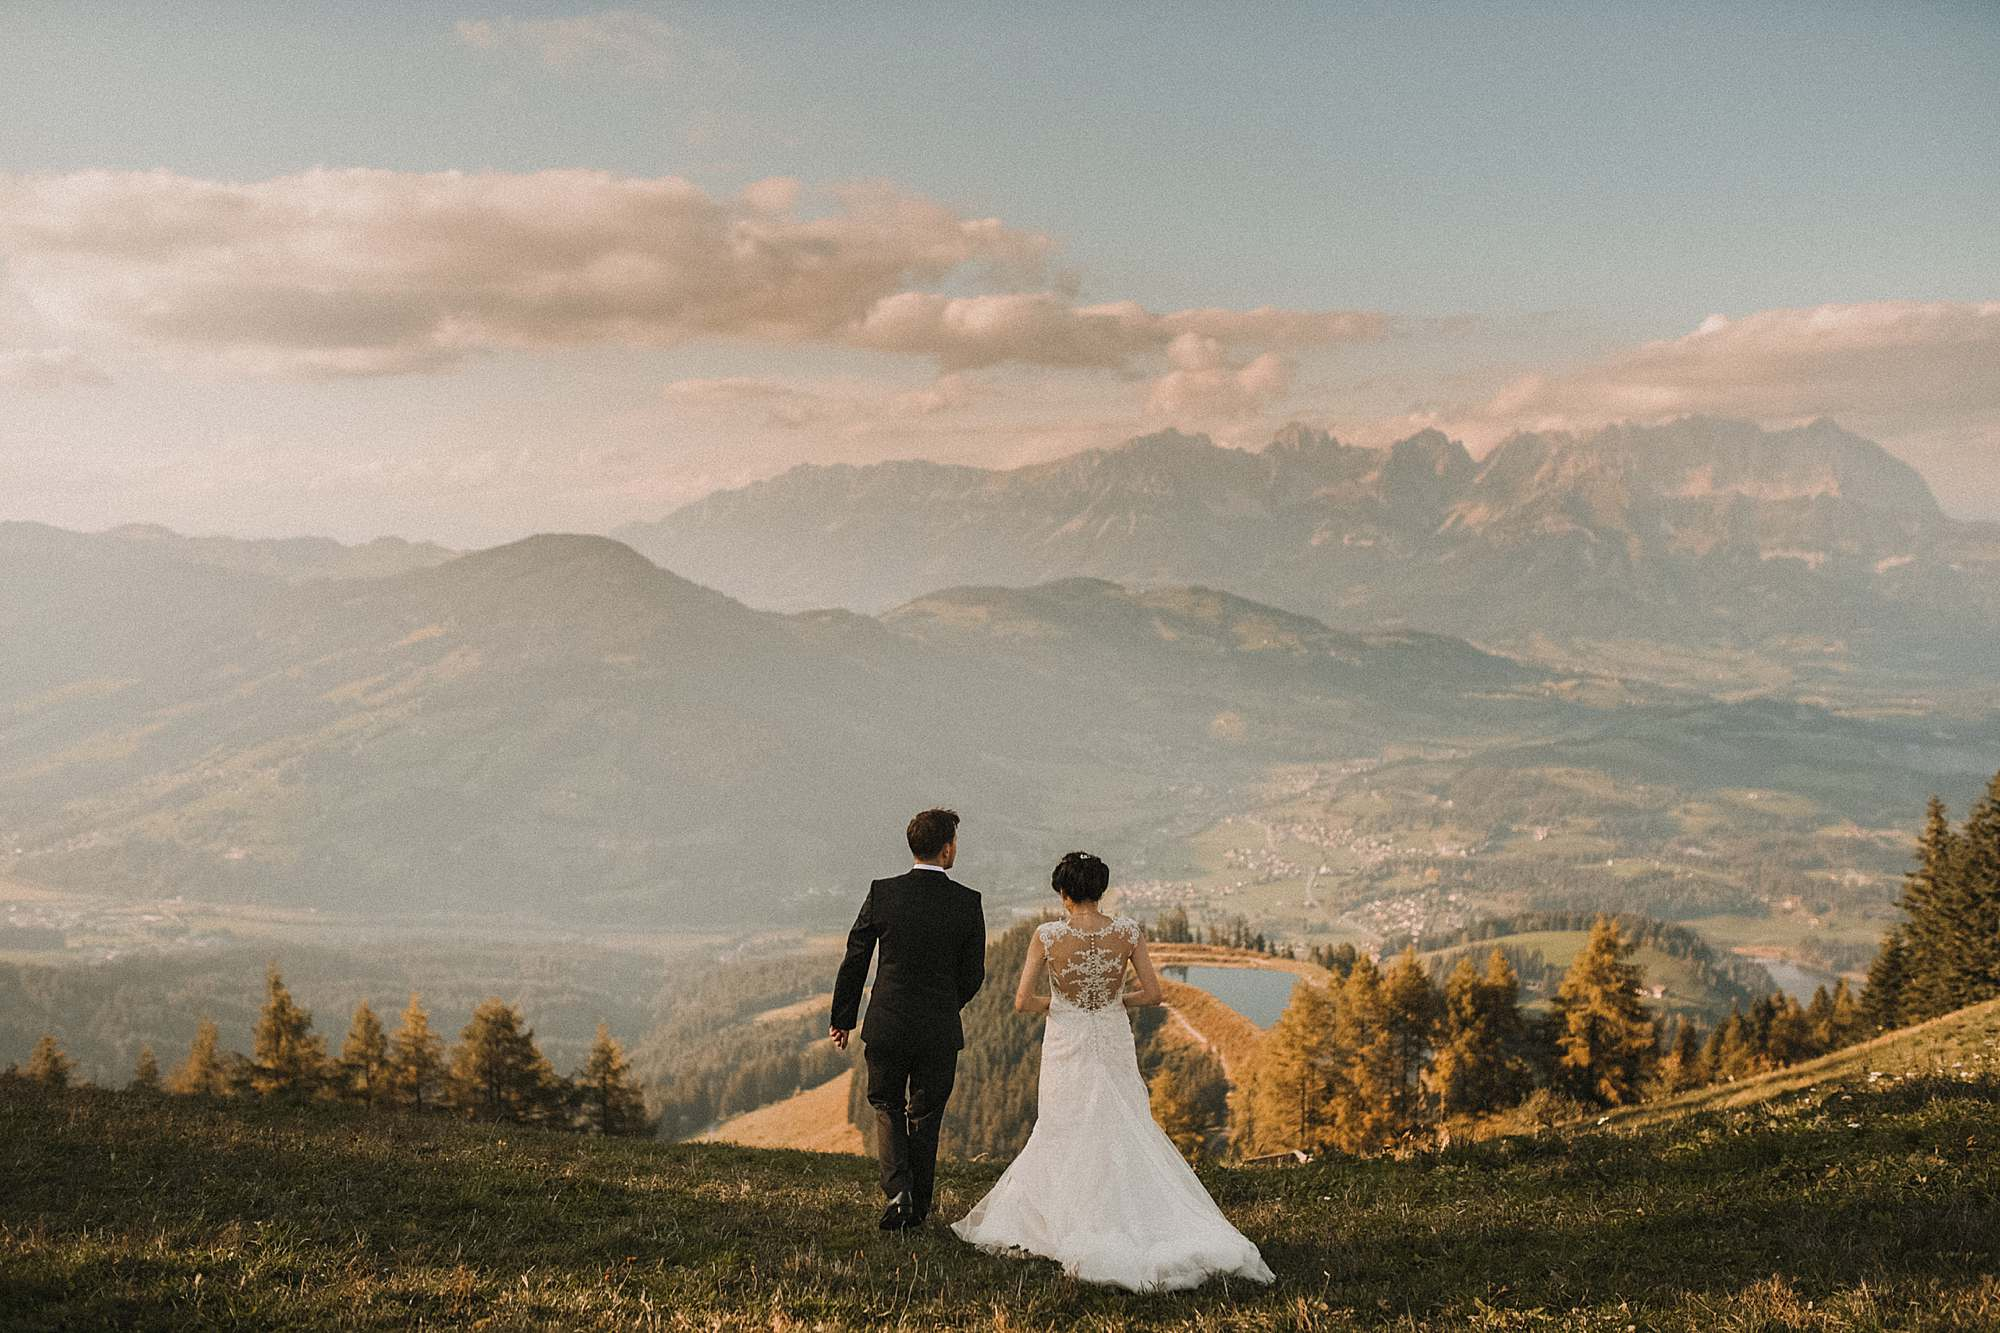 kitzbuehel wedding photographer_0068.jpg